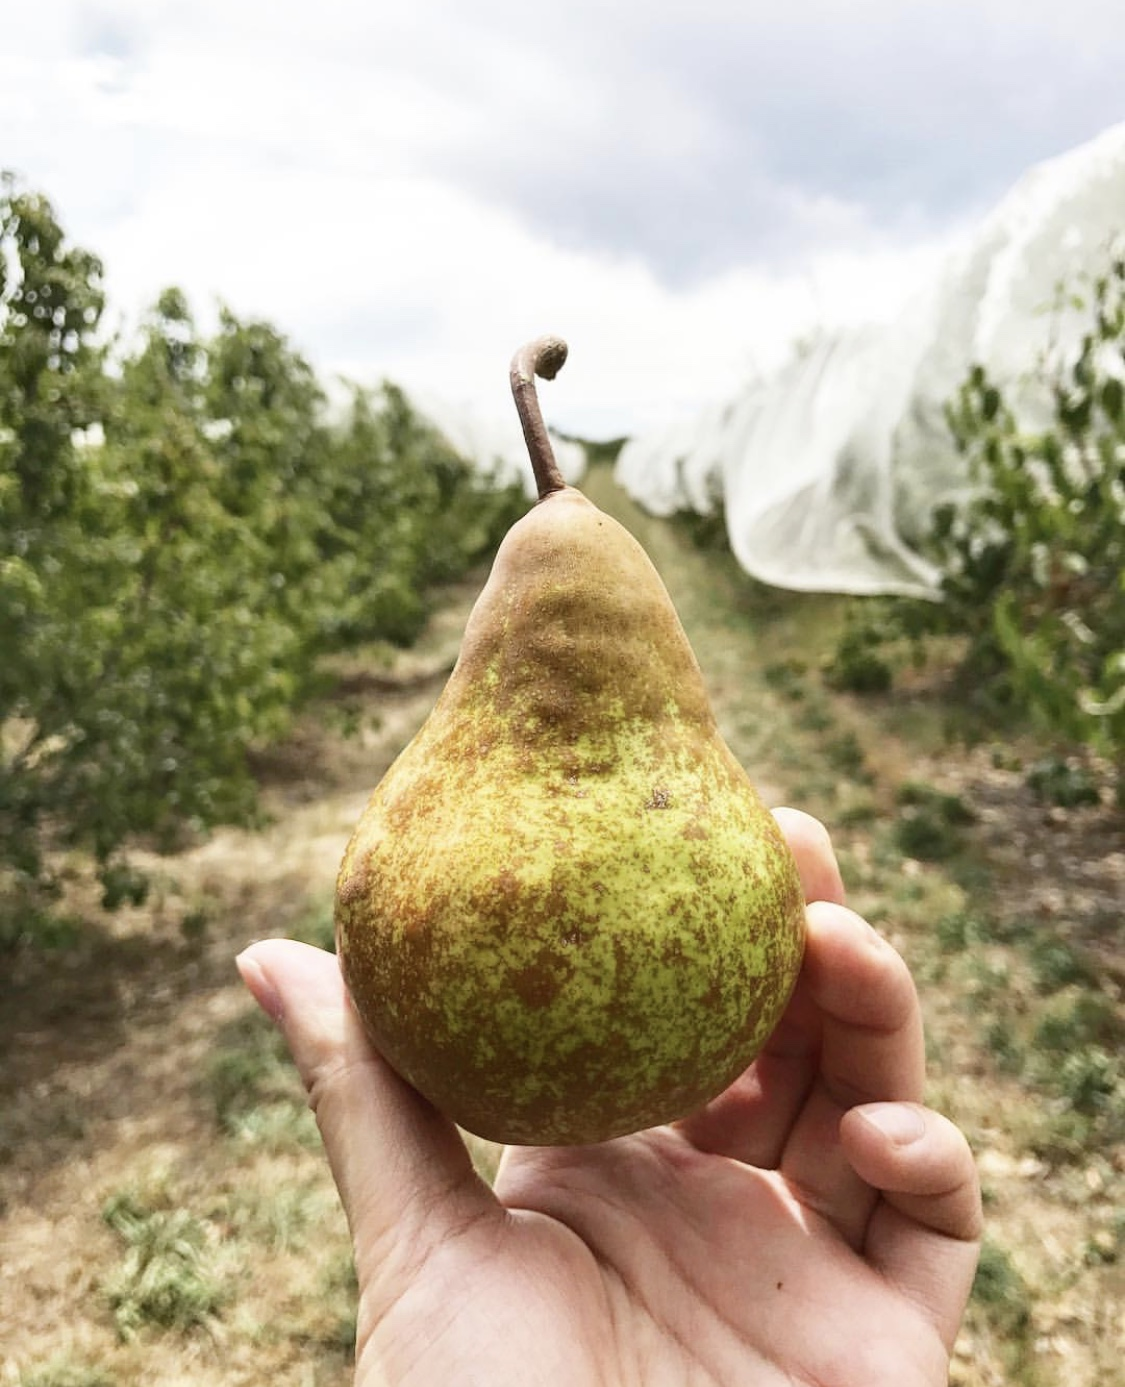 Thornbrook Orchard. #GoHyperlocal Guide to Orange NSW - Curated by Travis for your next Australian getaway